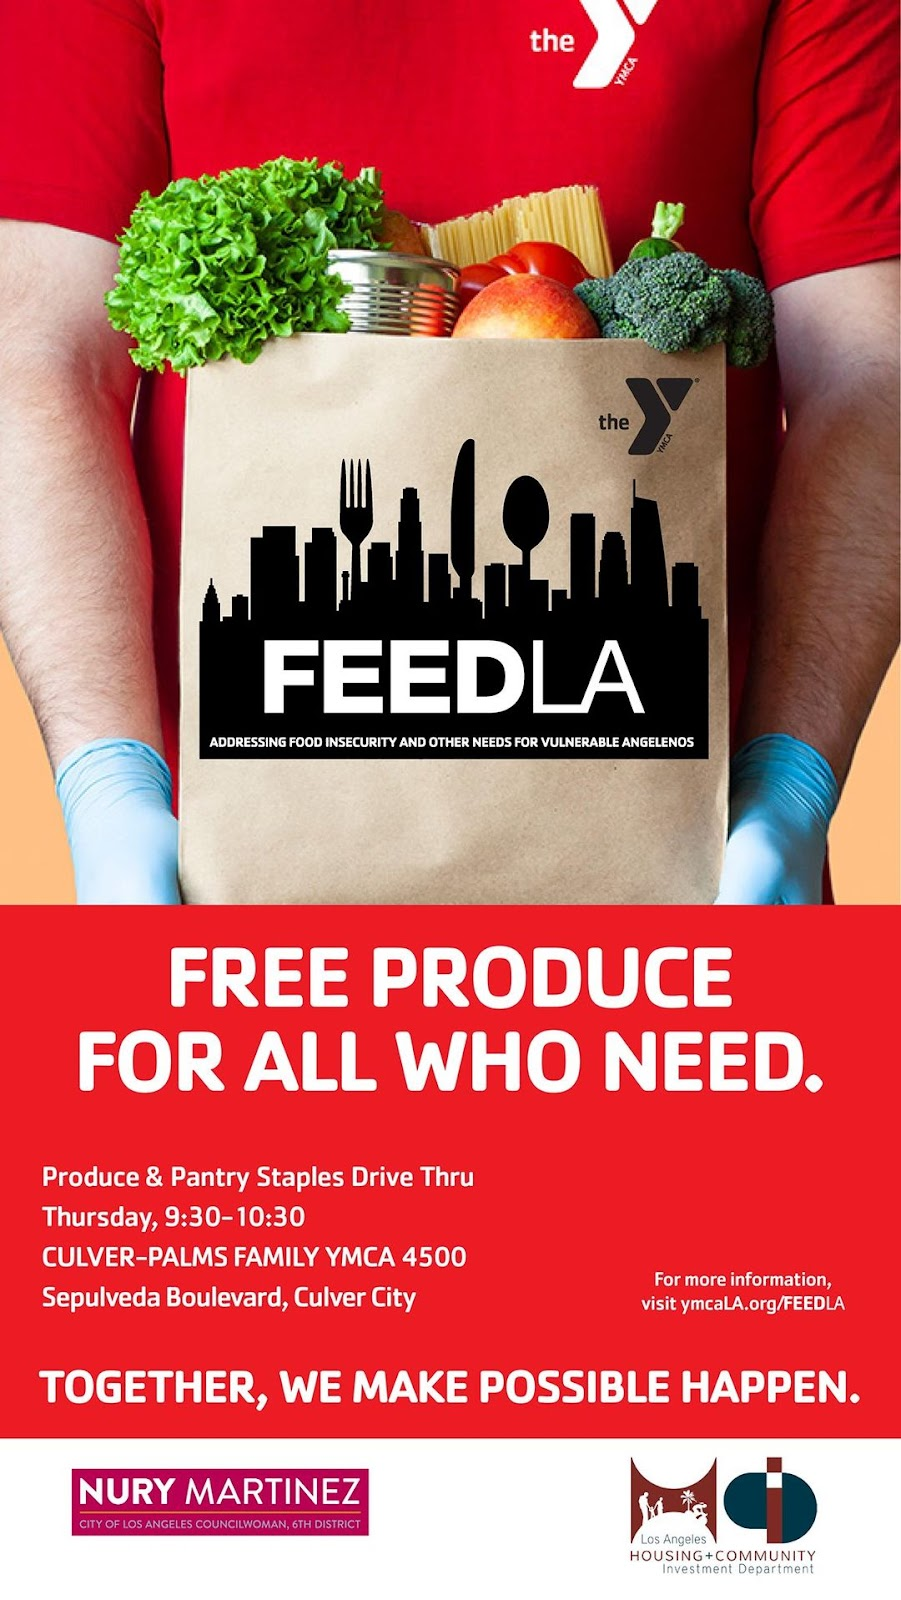 "Person holding bag of groceries ""FeedLA"" Free Produce to All Who Need"